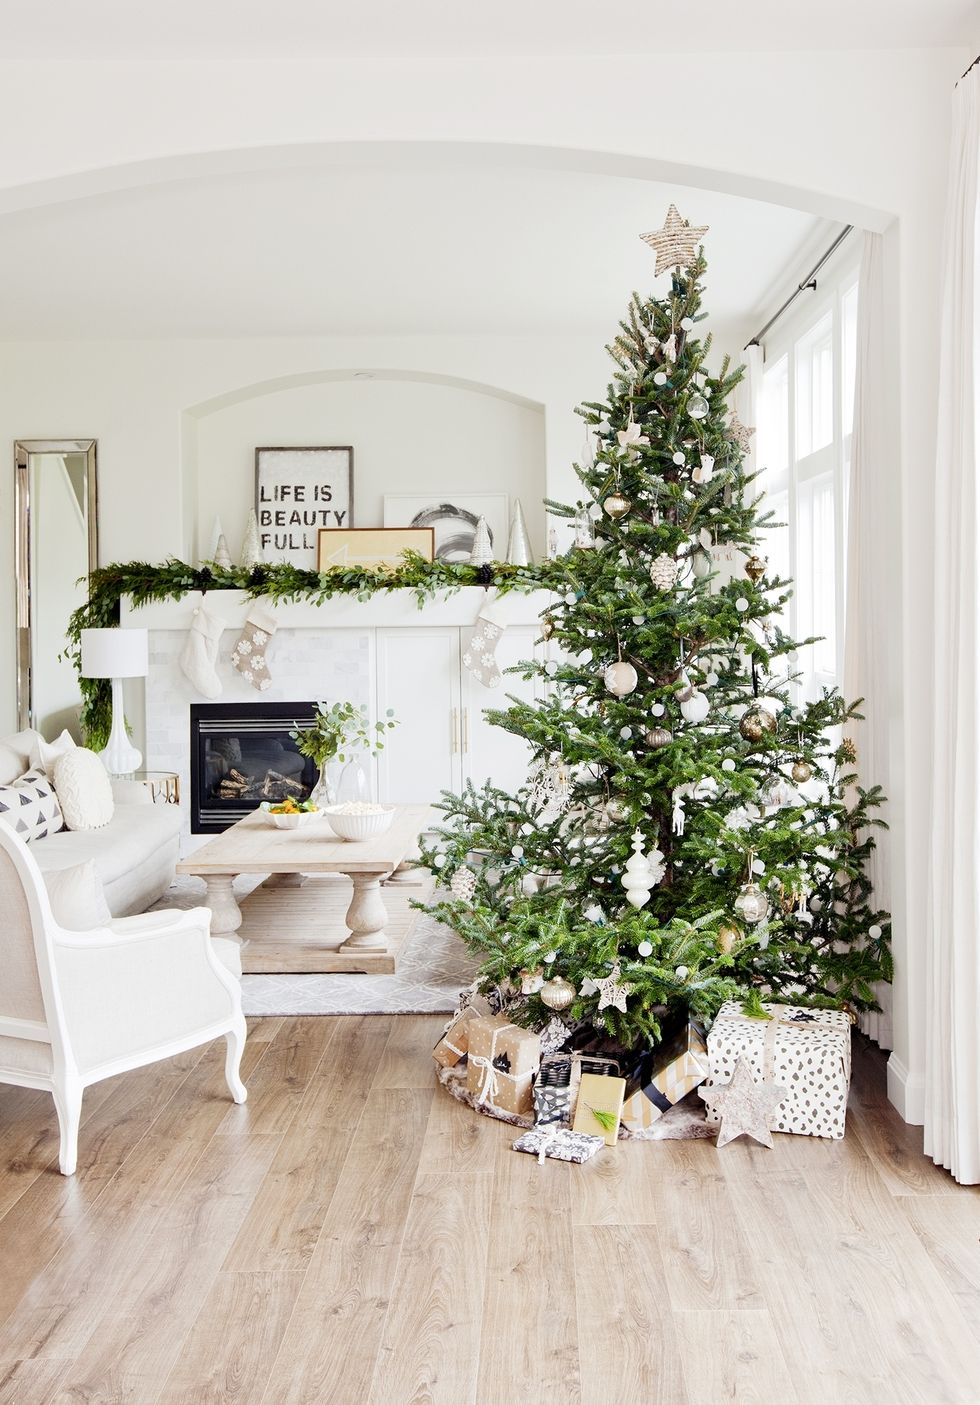 Chic Neutral Christmas Tree Minimalist Holiday Living Room Decorations